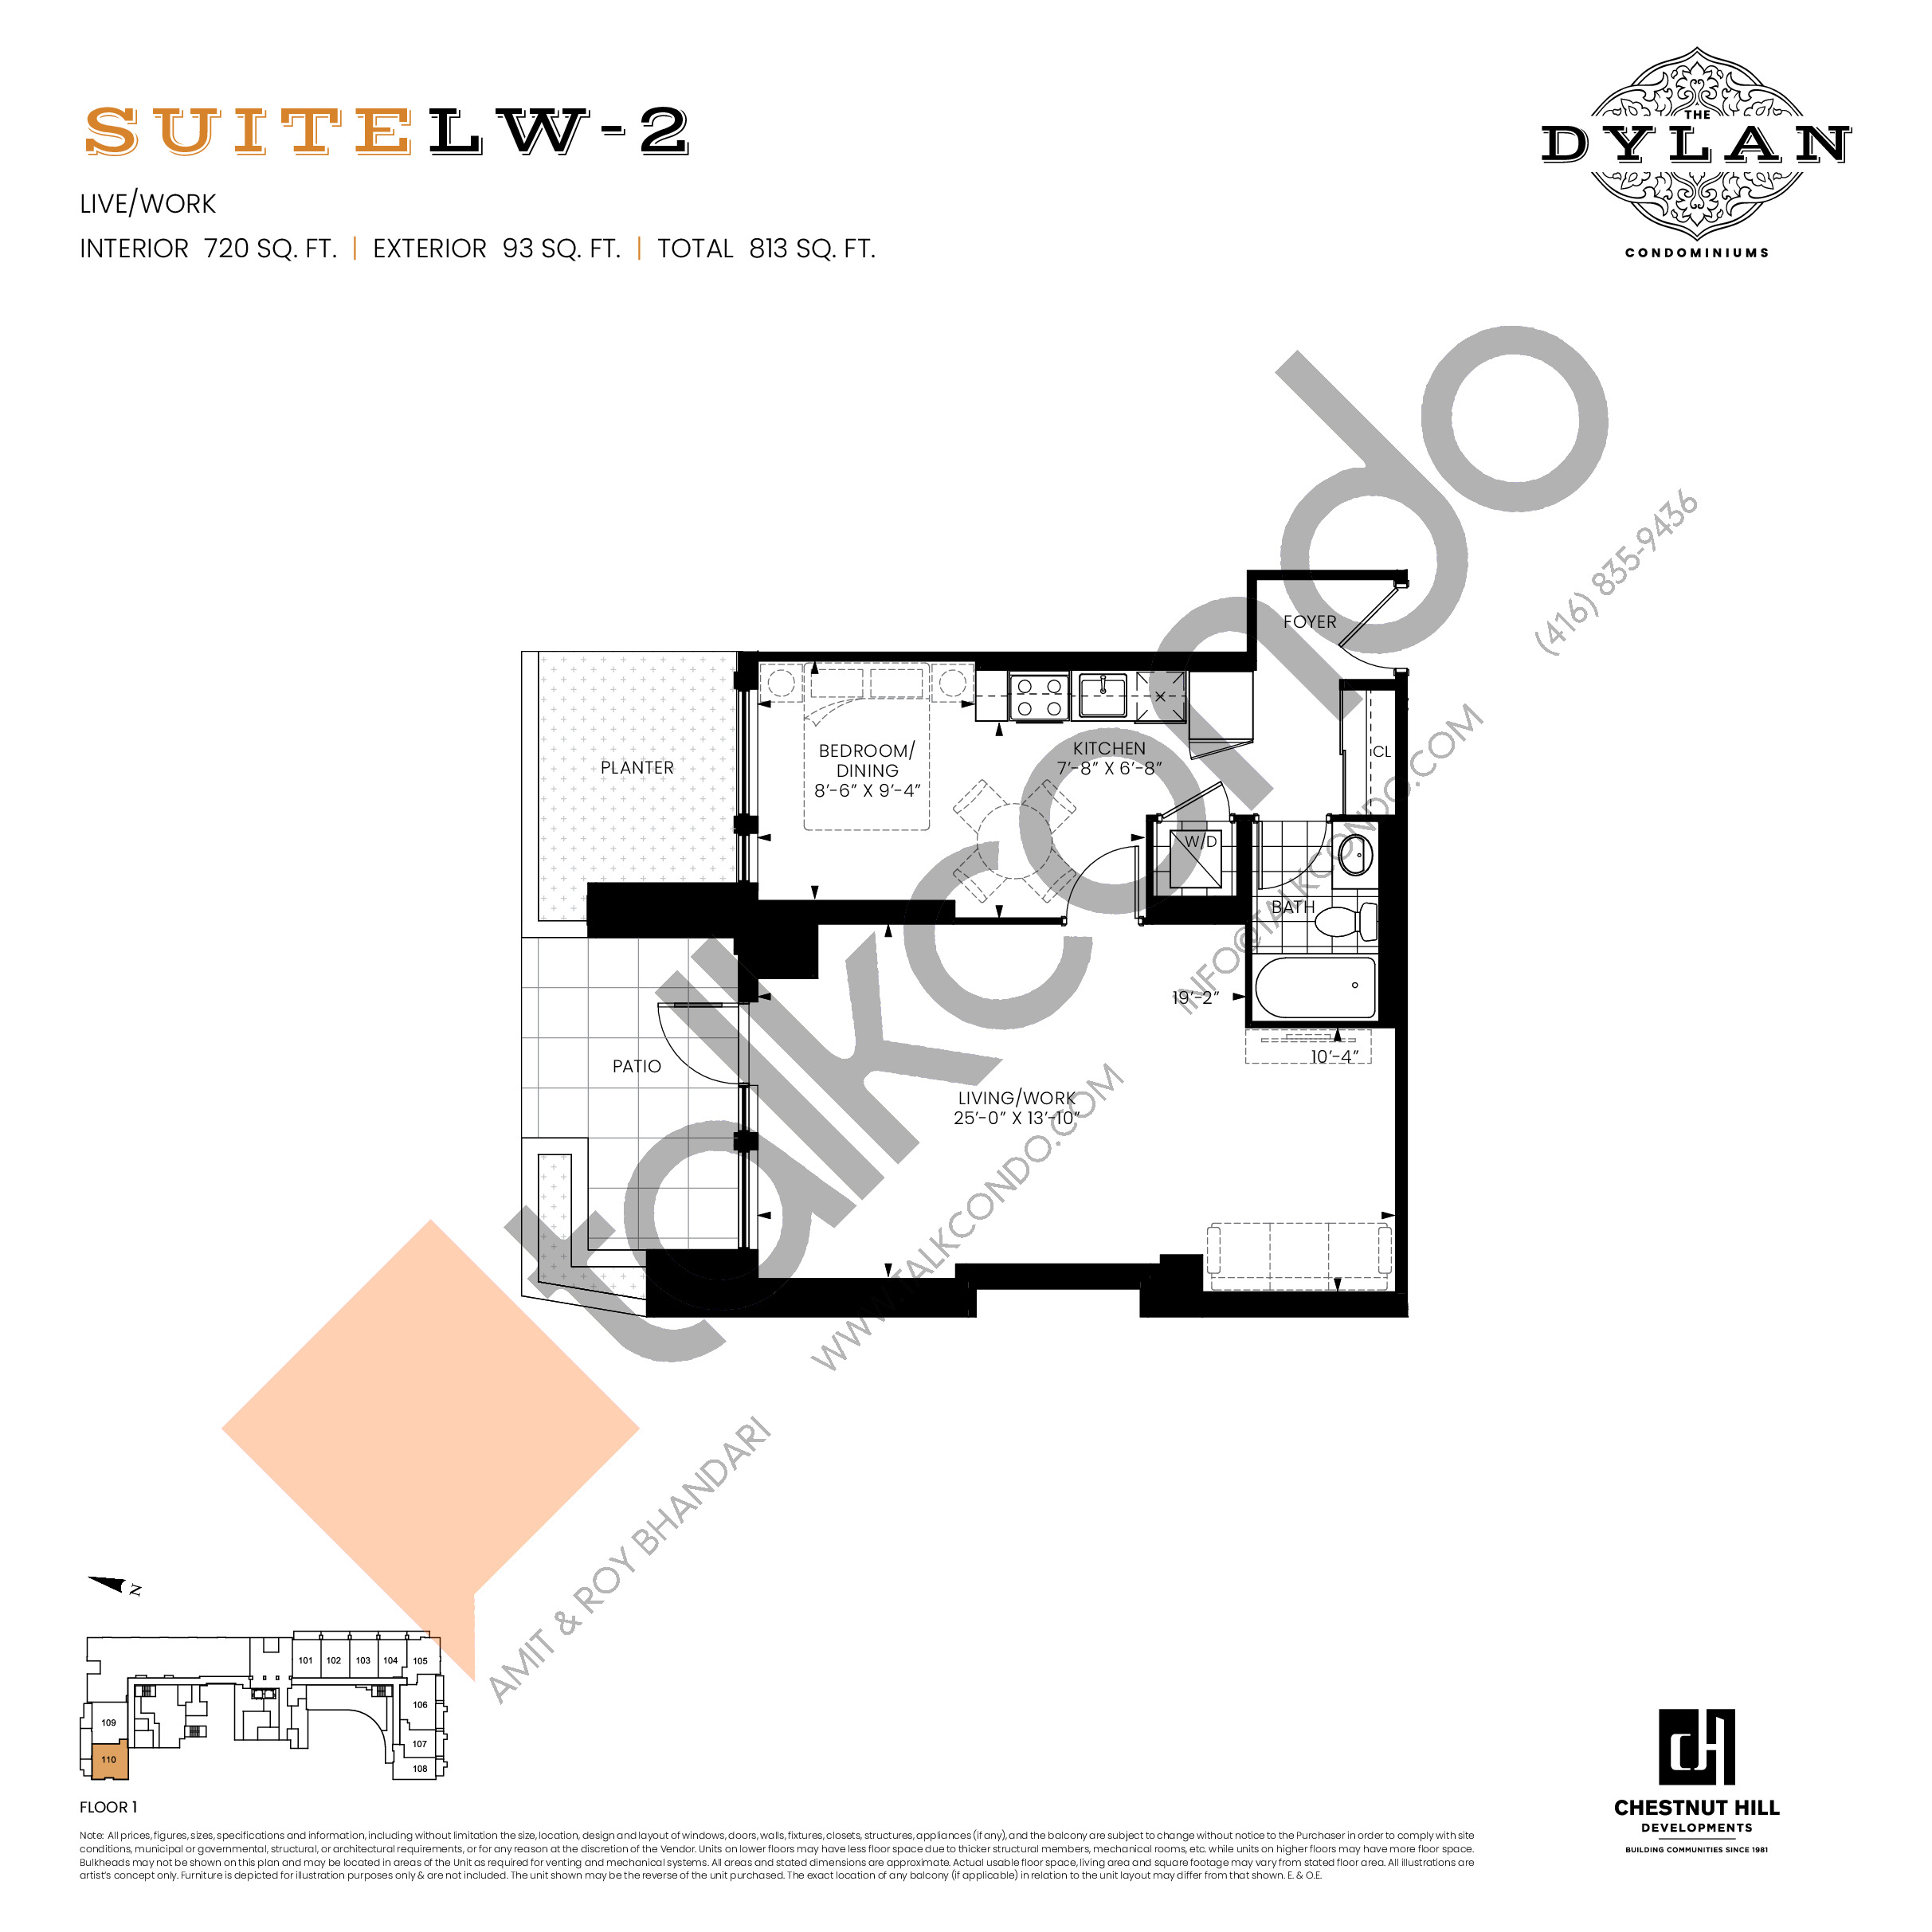 Suite LW-2 Floor Plan at The Dylan Condos - 720 sq.ft